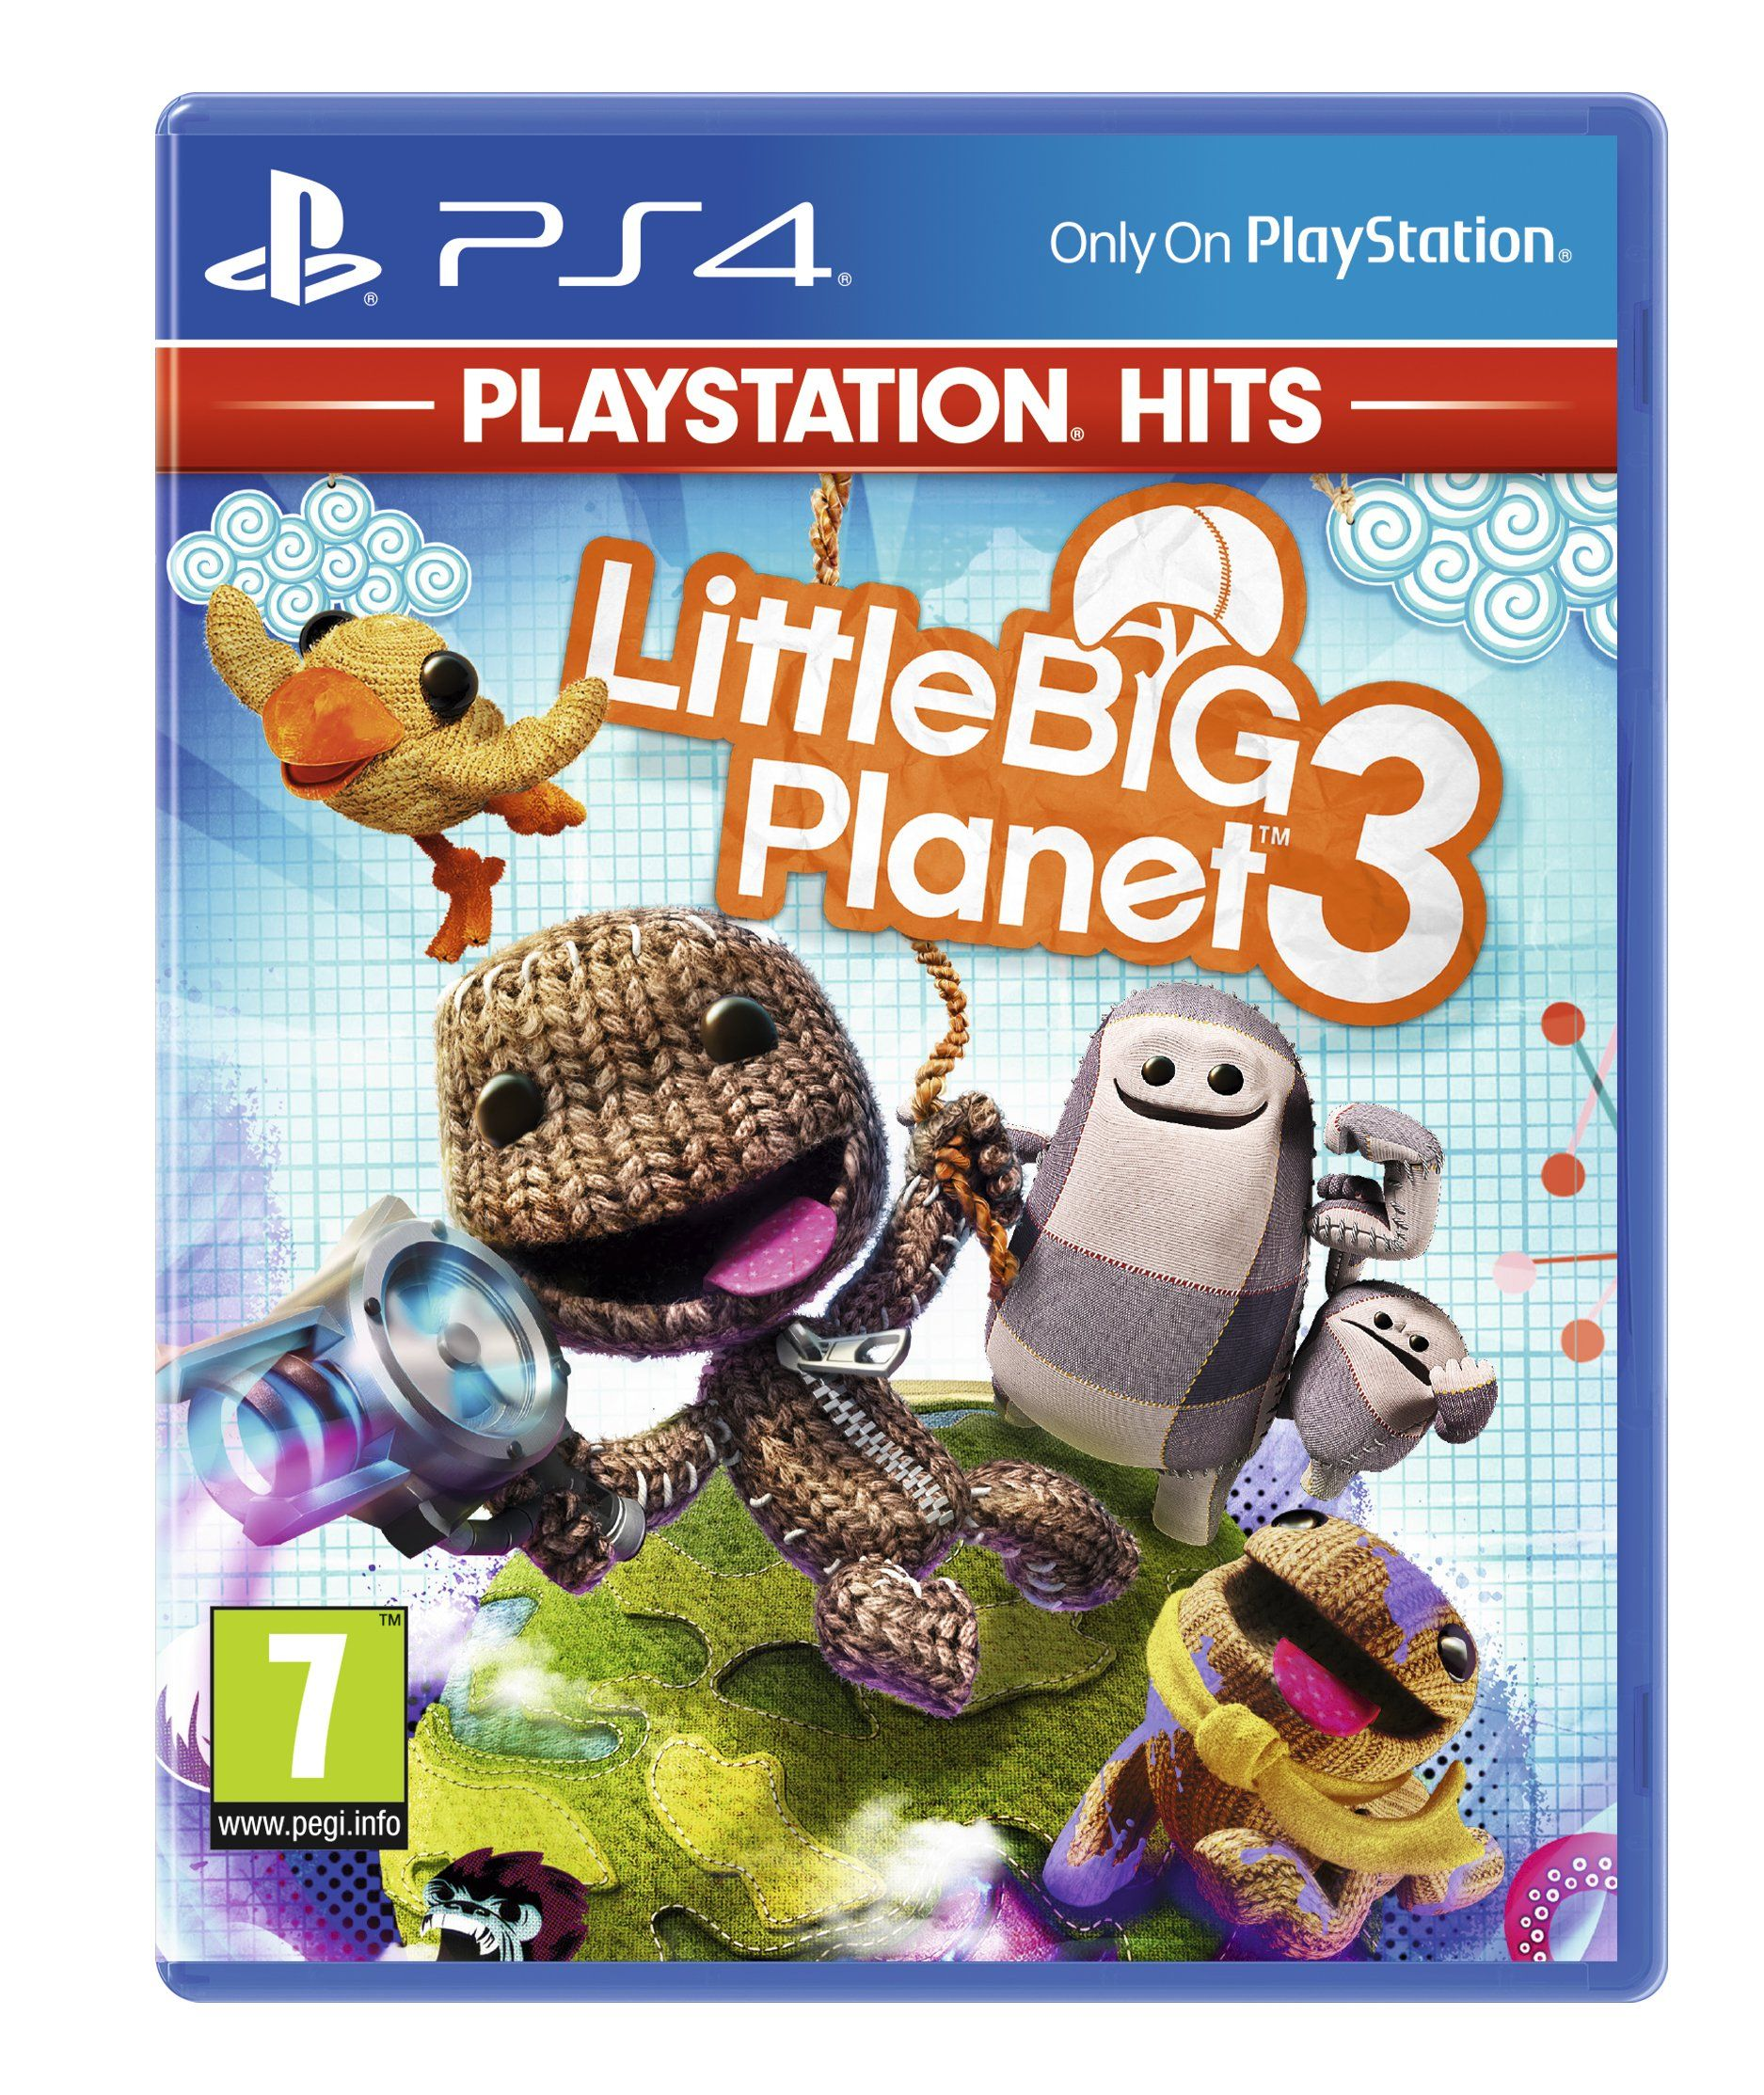 Little Big Planet 3 - PlayStation Hits